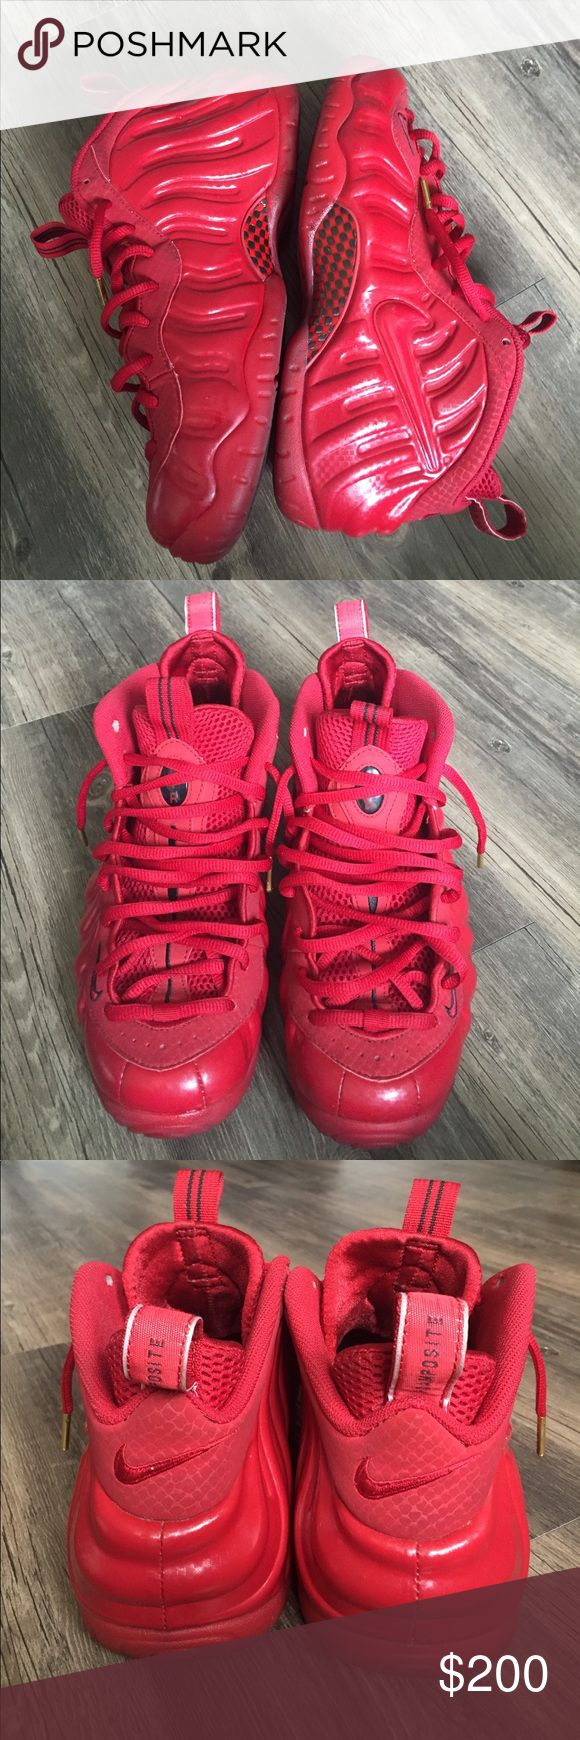 Nike Foamposite Excellent used condition. No major flaws. Worn minimally. Size 10. All red. Nike Shoes Sneakers